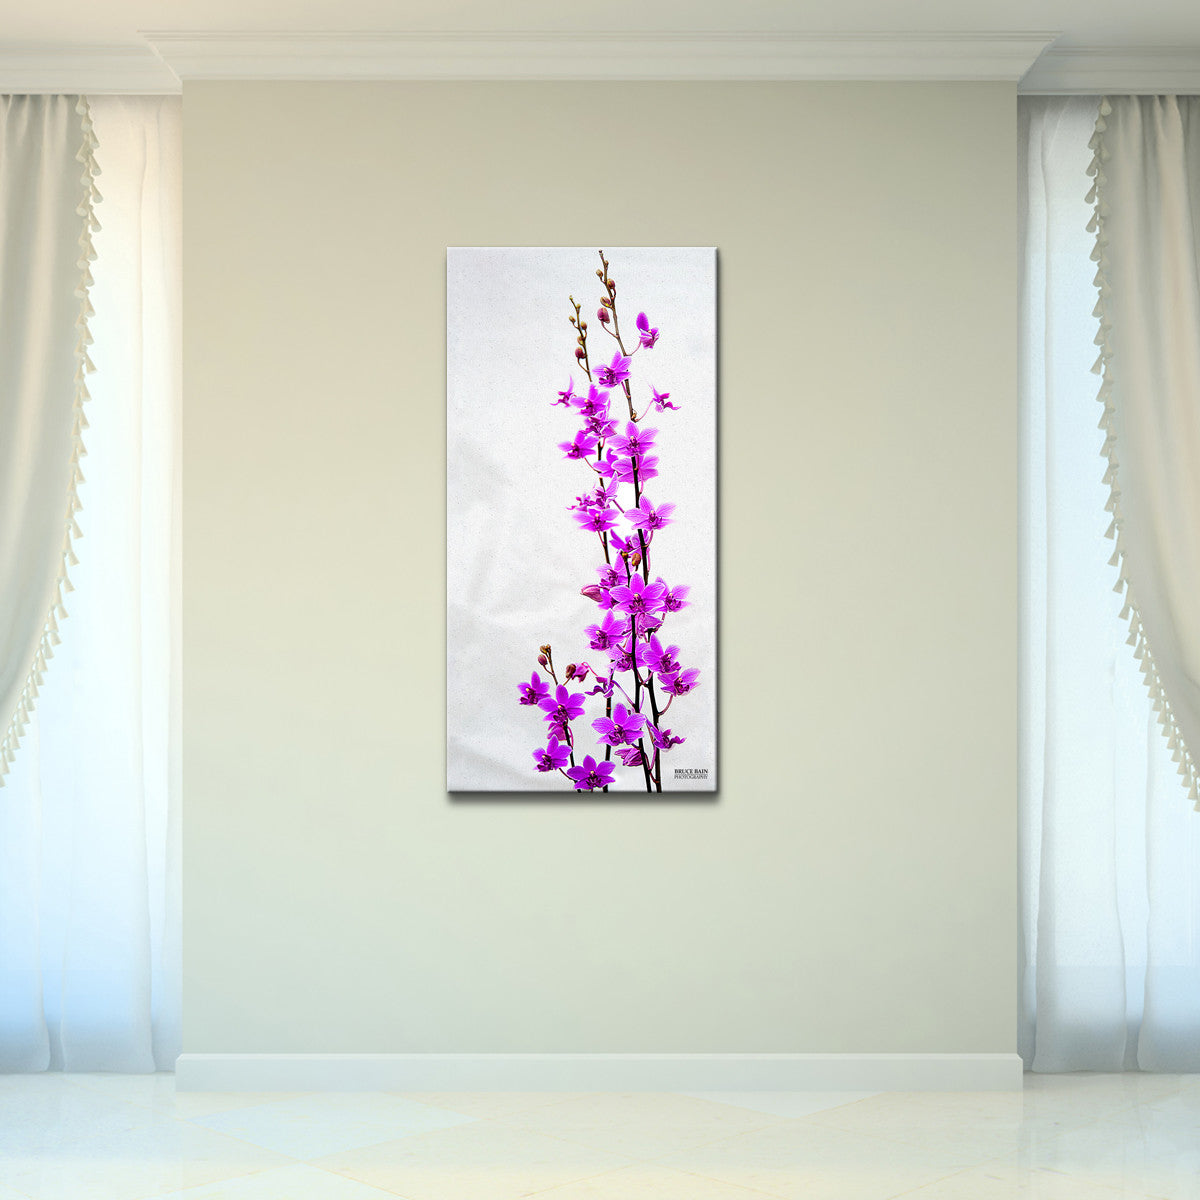 Bruce Bain 'Purple Orchid' 40x20 inch Canvas Wall Art